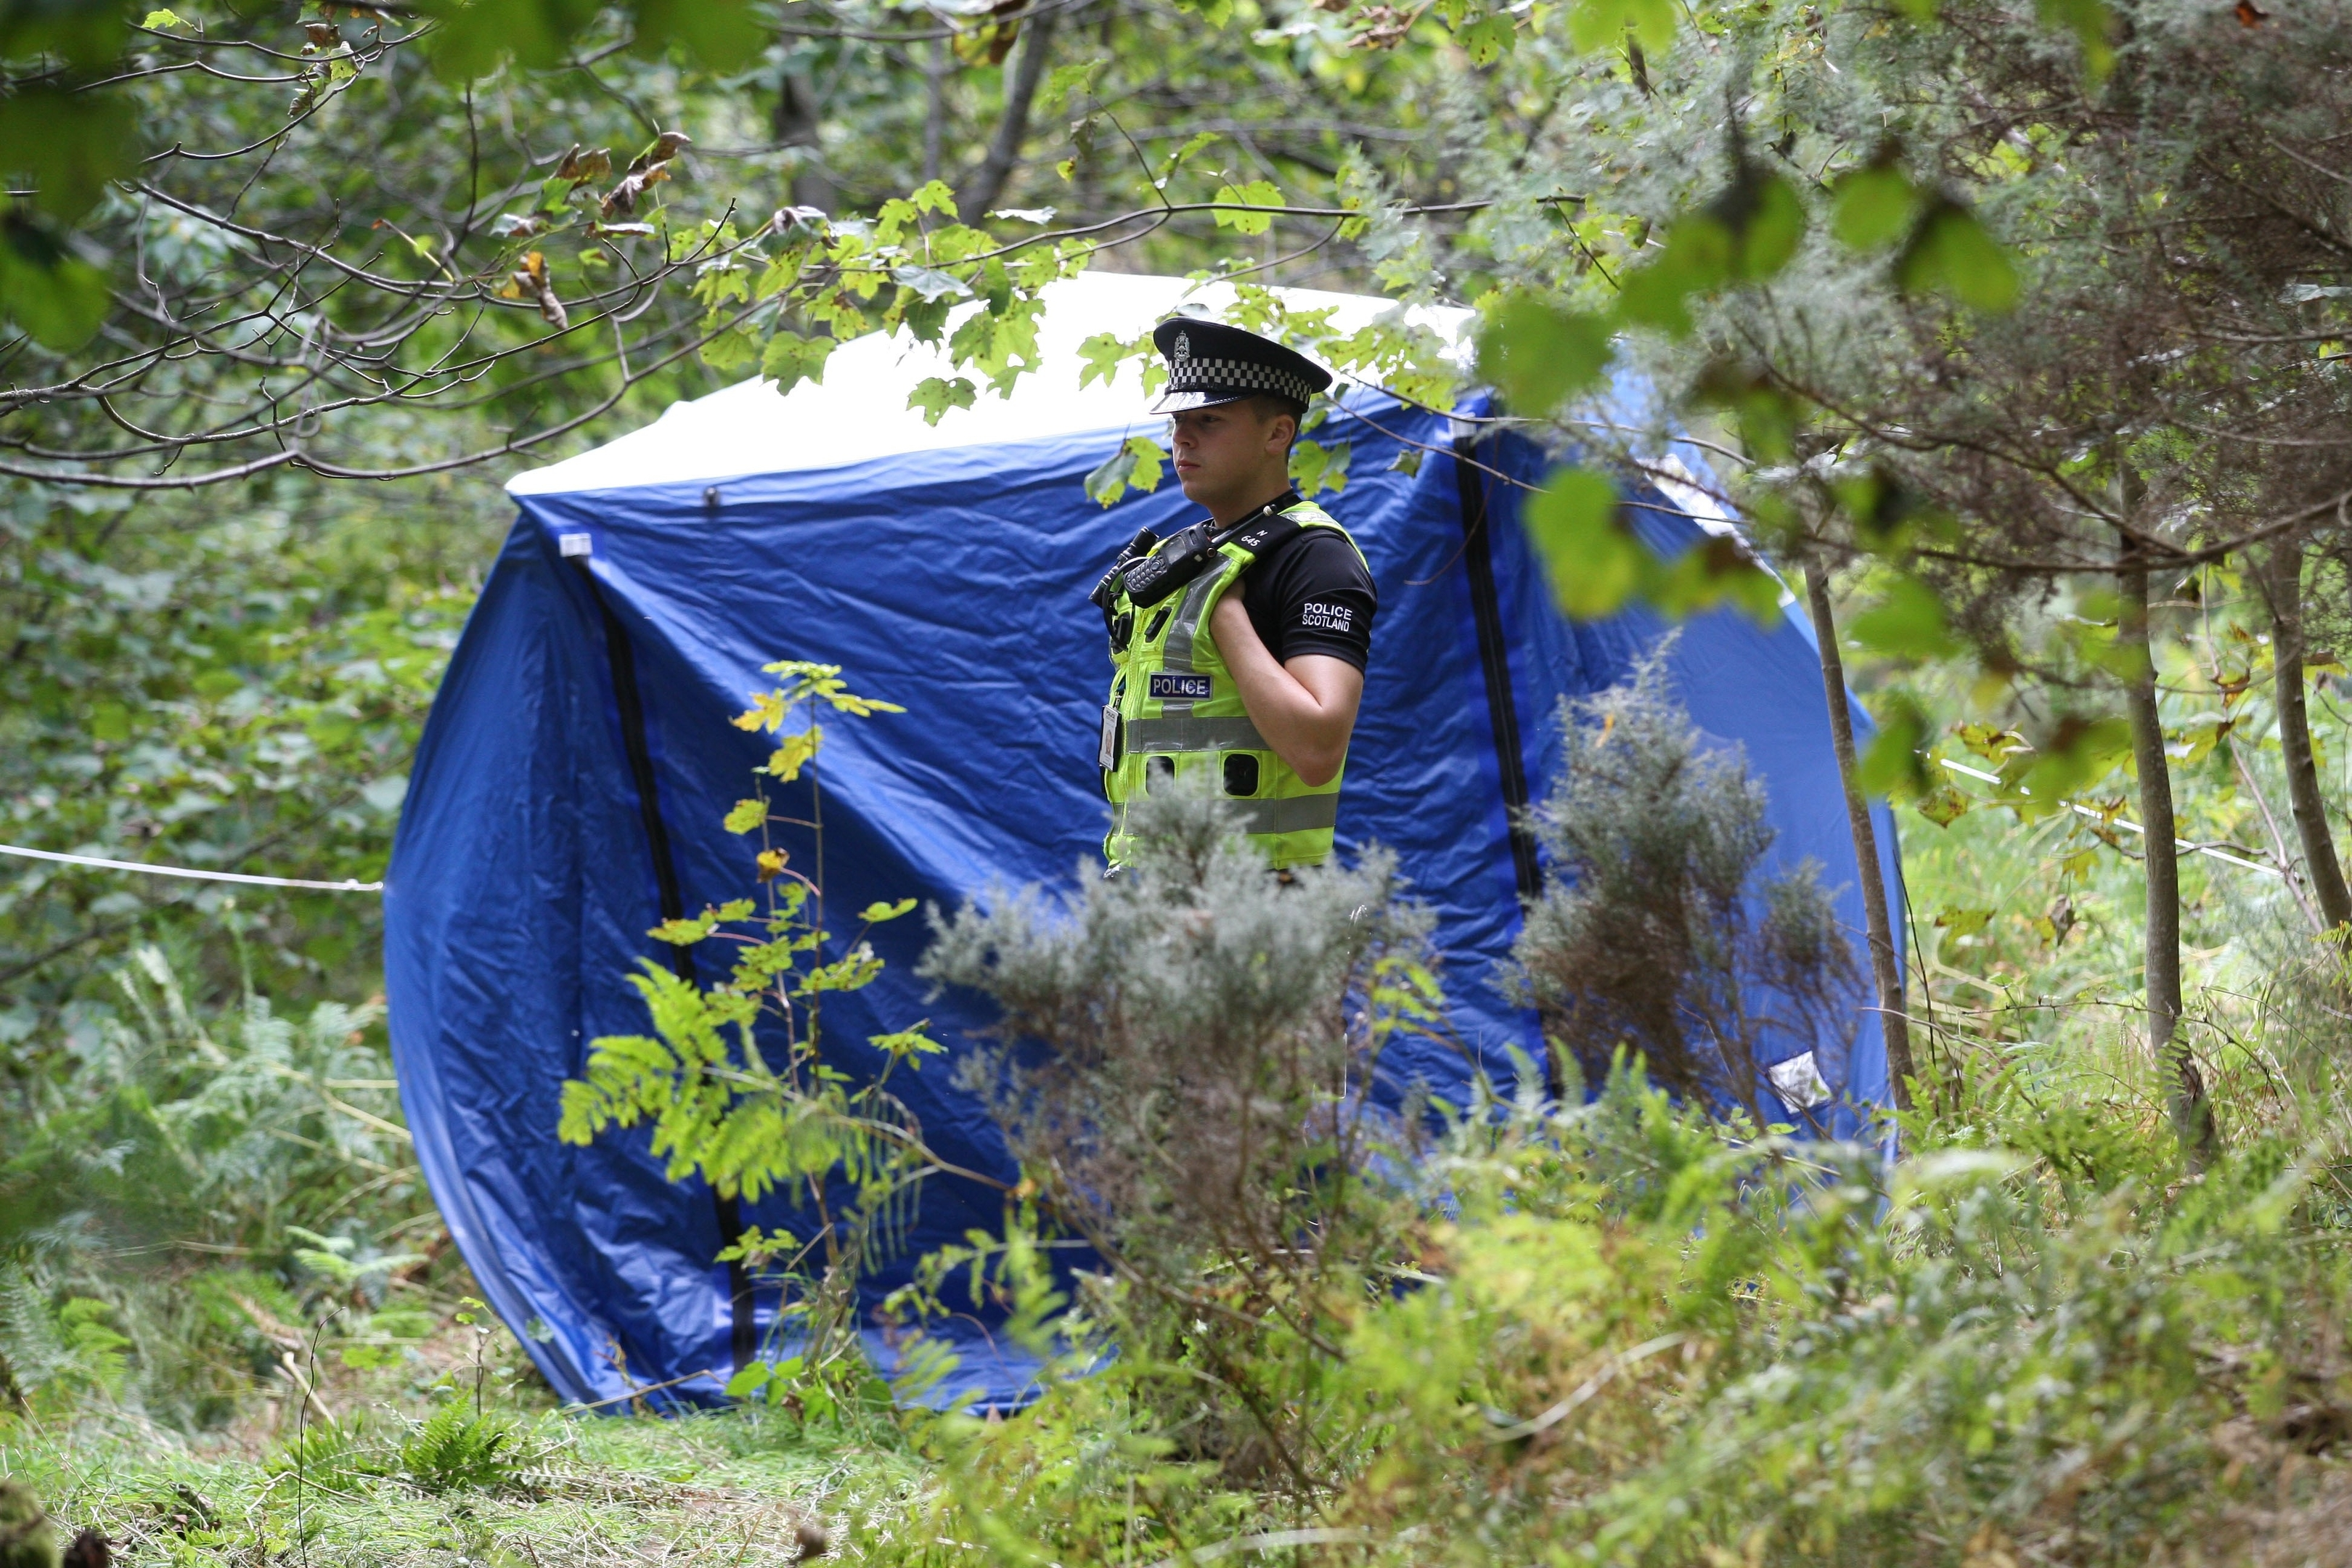 Police have identified a man found dead in Torvean Quarry